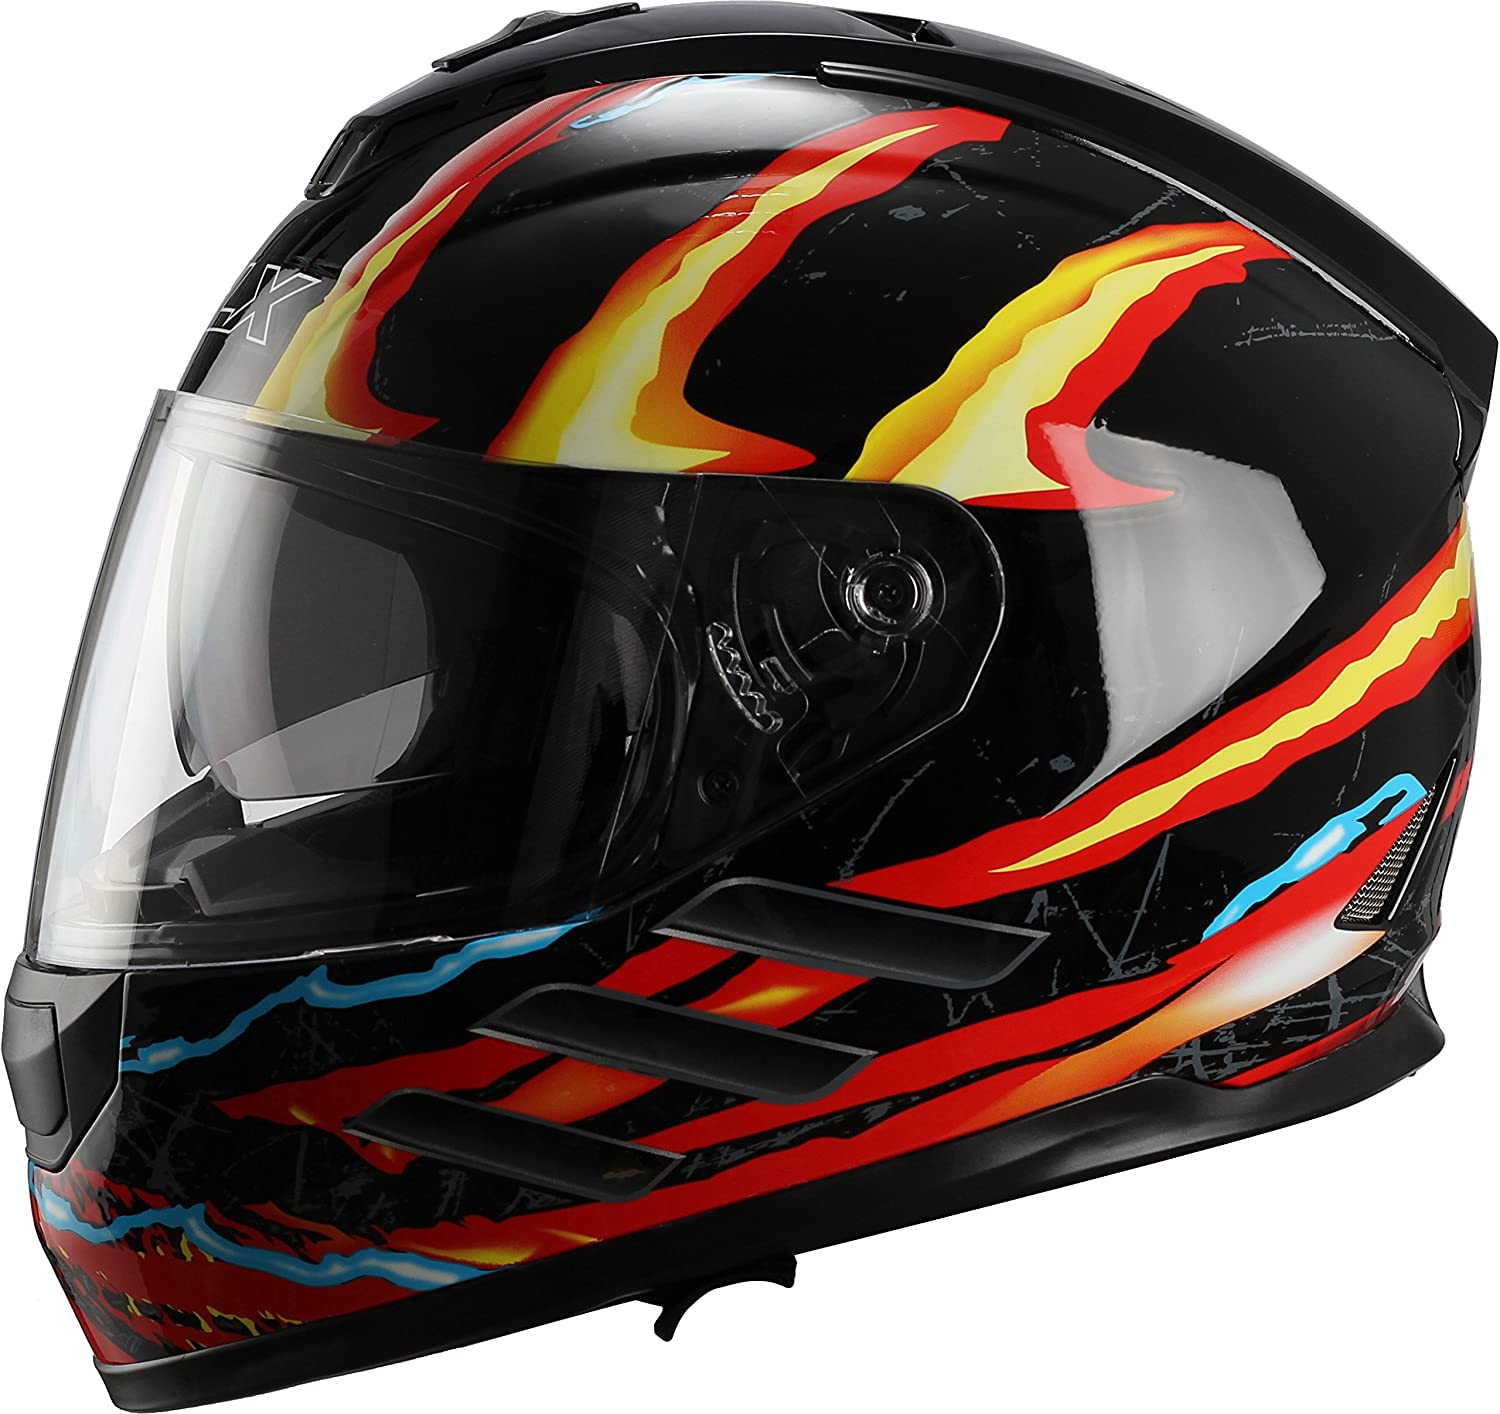 Amazon.com: GLX Street Bike Motorcycle Full Face Helmet Dual Visor DOT Approved: Automotive